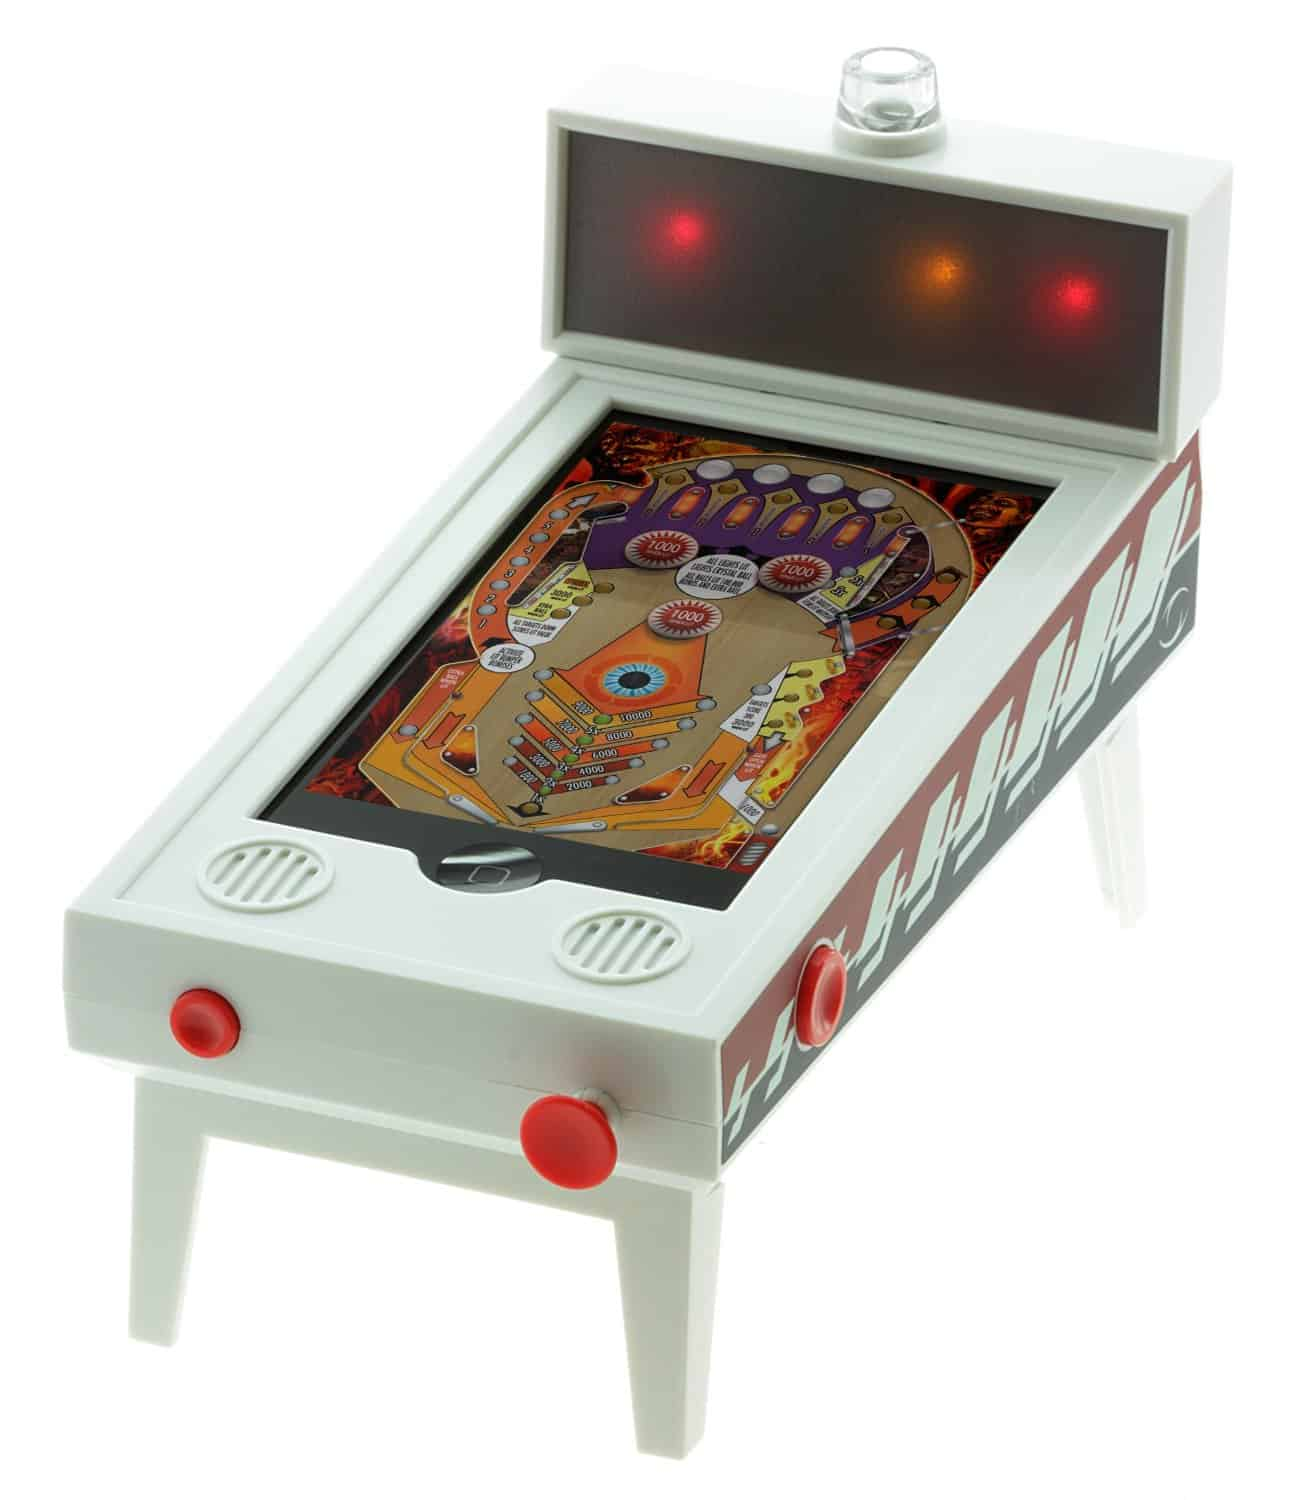 New Potato Technologies Pinball Magic for iPhone Cute Small Stuff to Buy